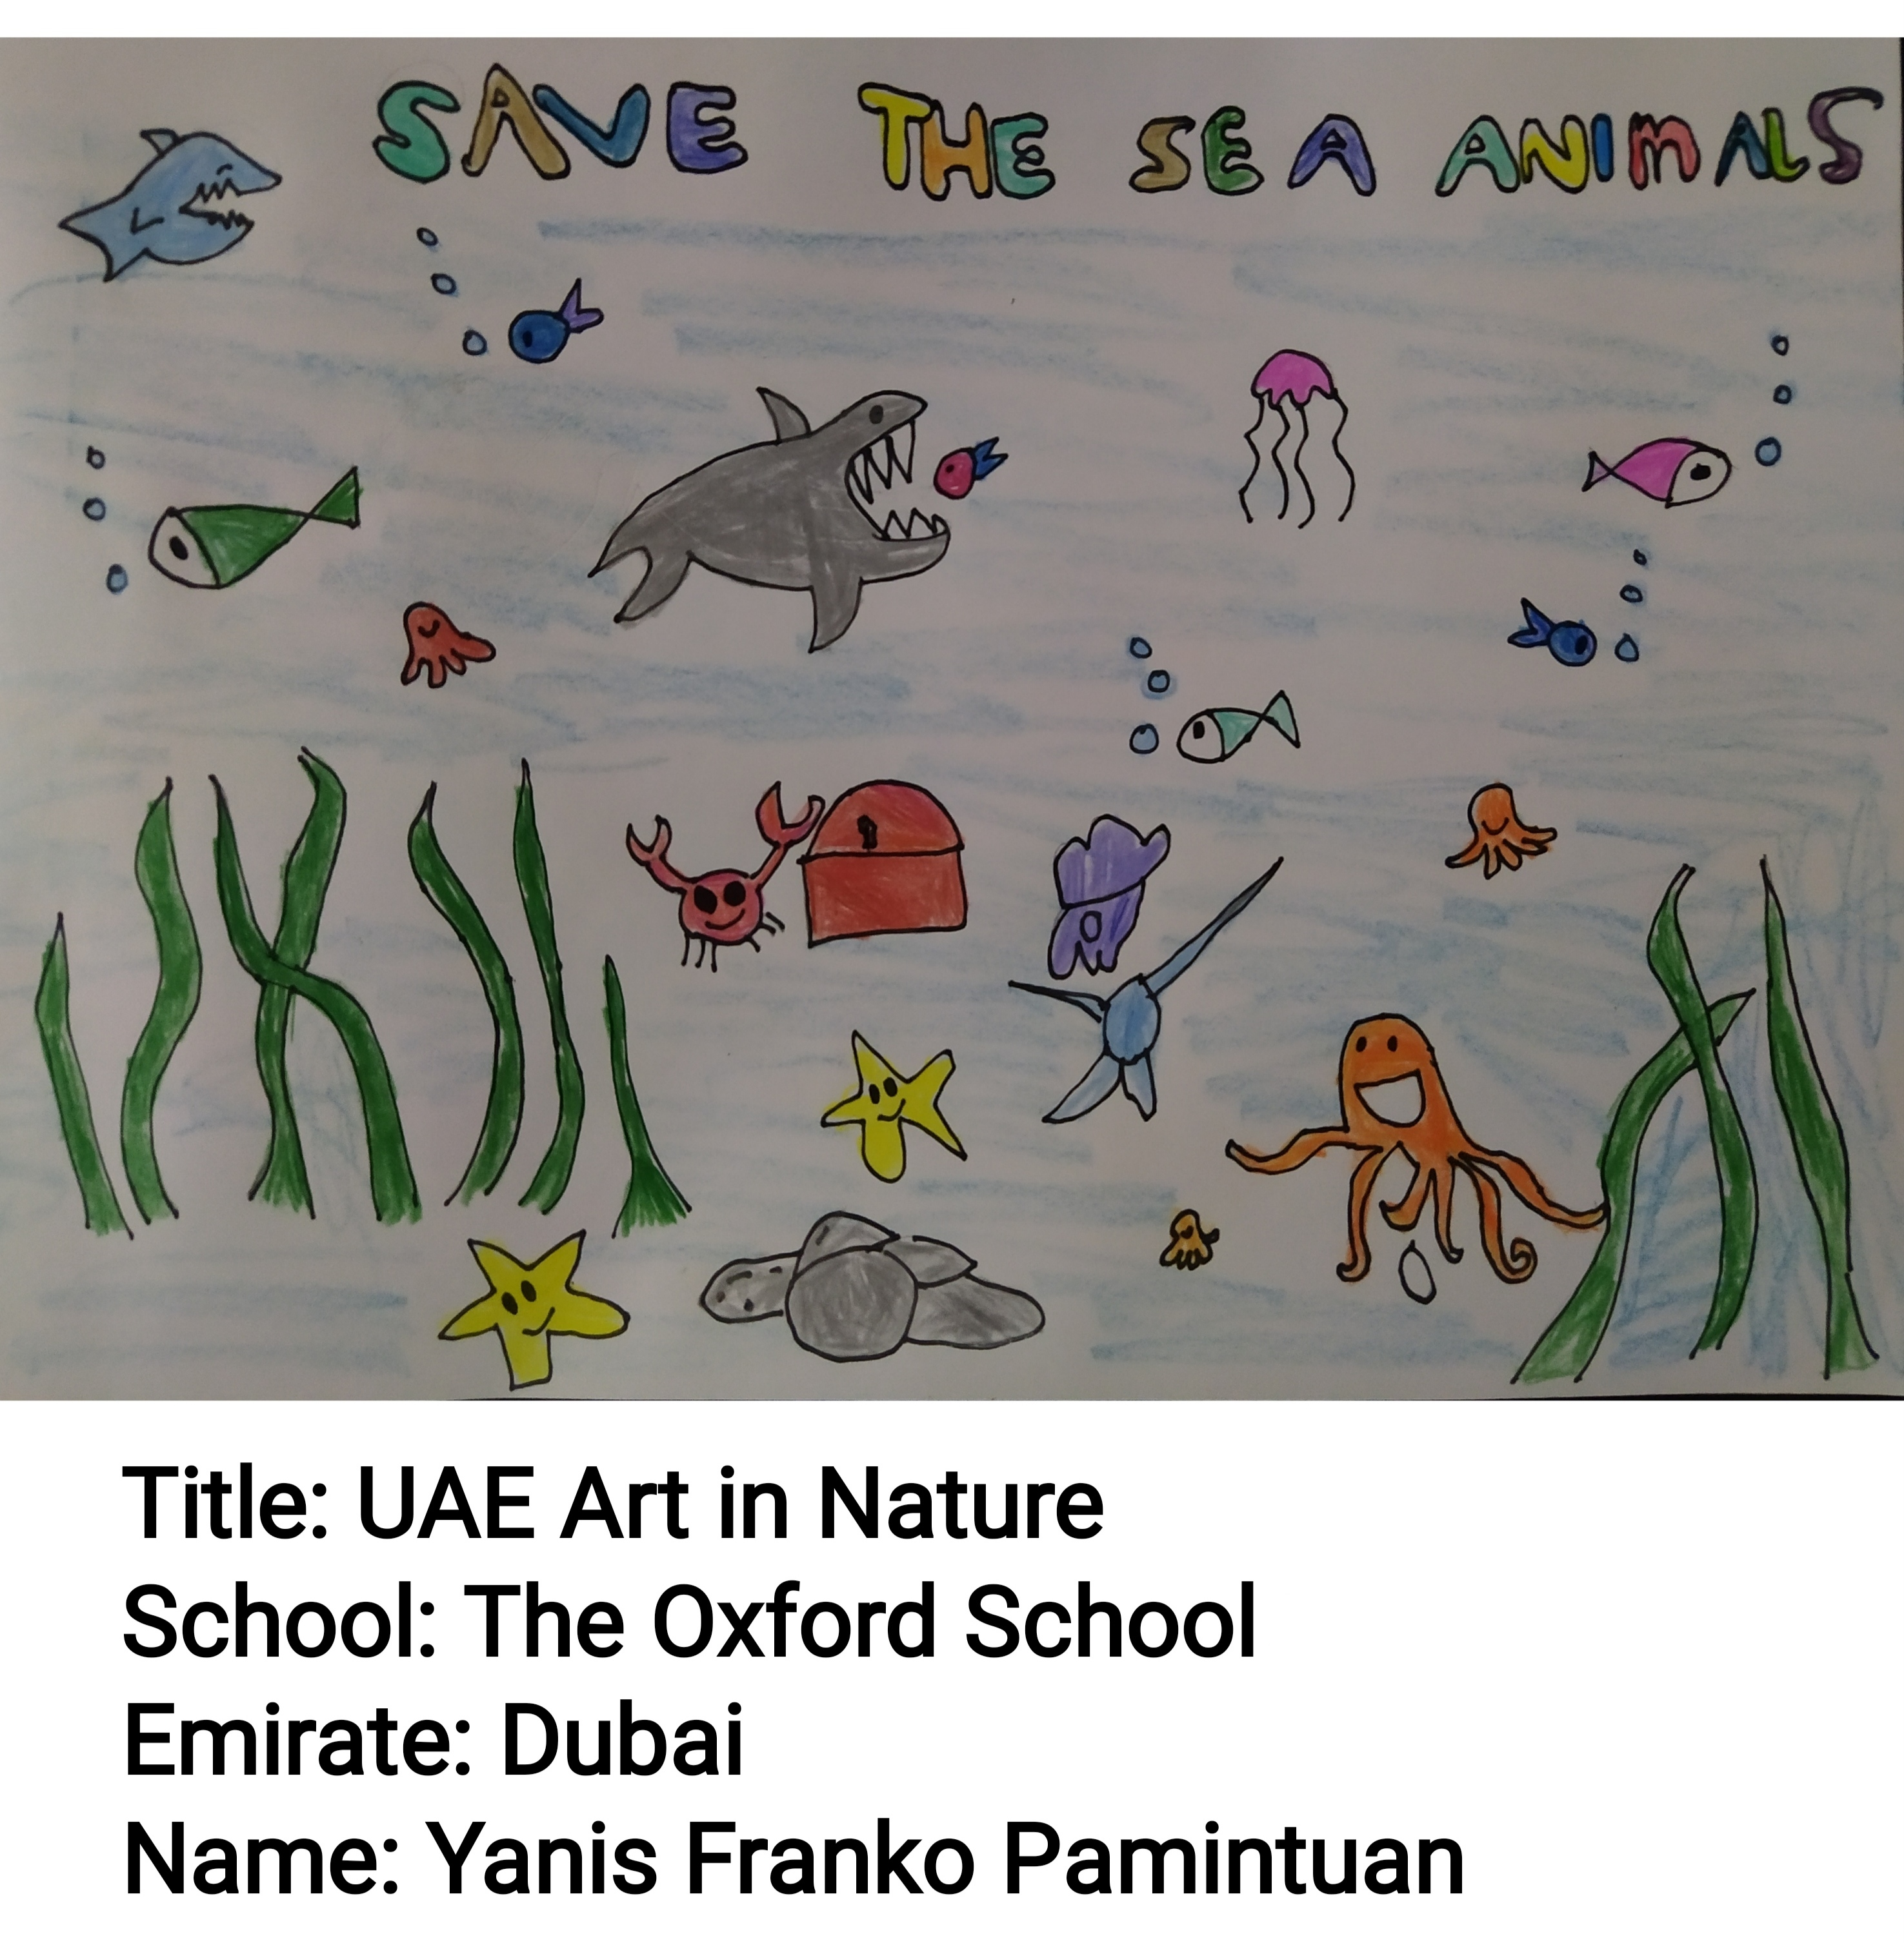 UAE Art in Nature by Yanis Franko Pamintuan